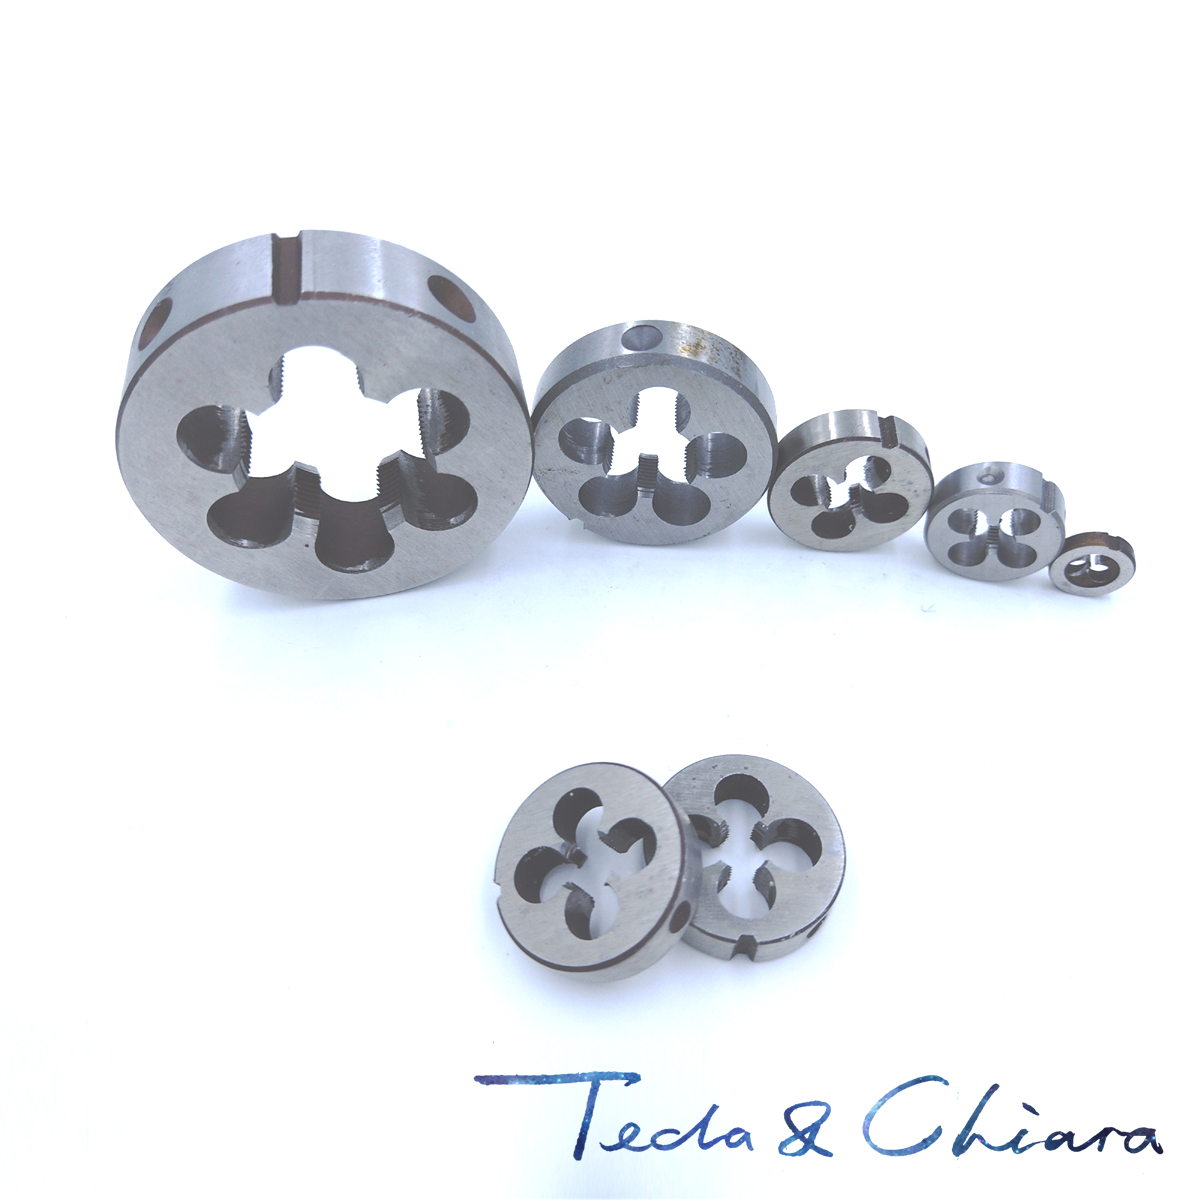 1Pc 1/4-20 1/4-28 Left Hand LH Round Die TPI Threading Tools For Mold Machining 1/4